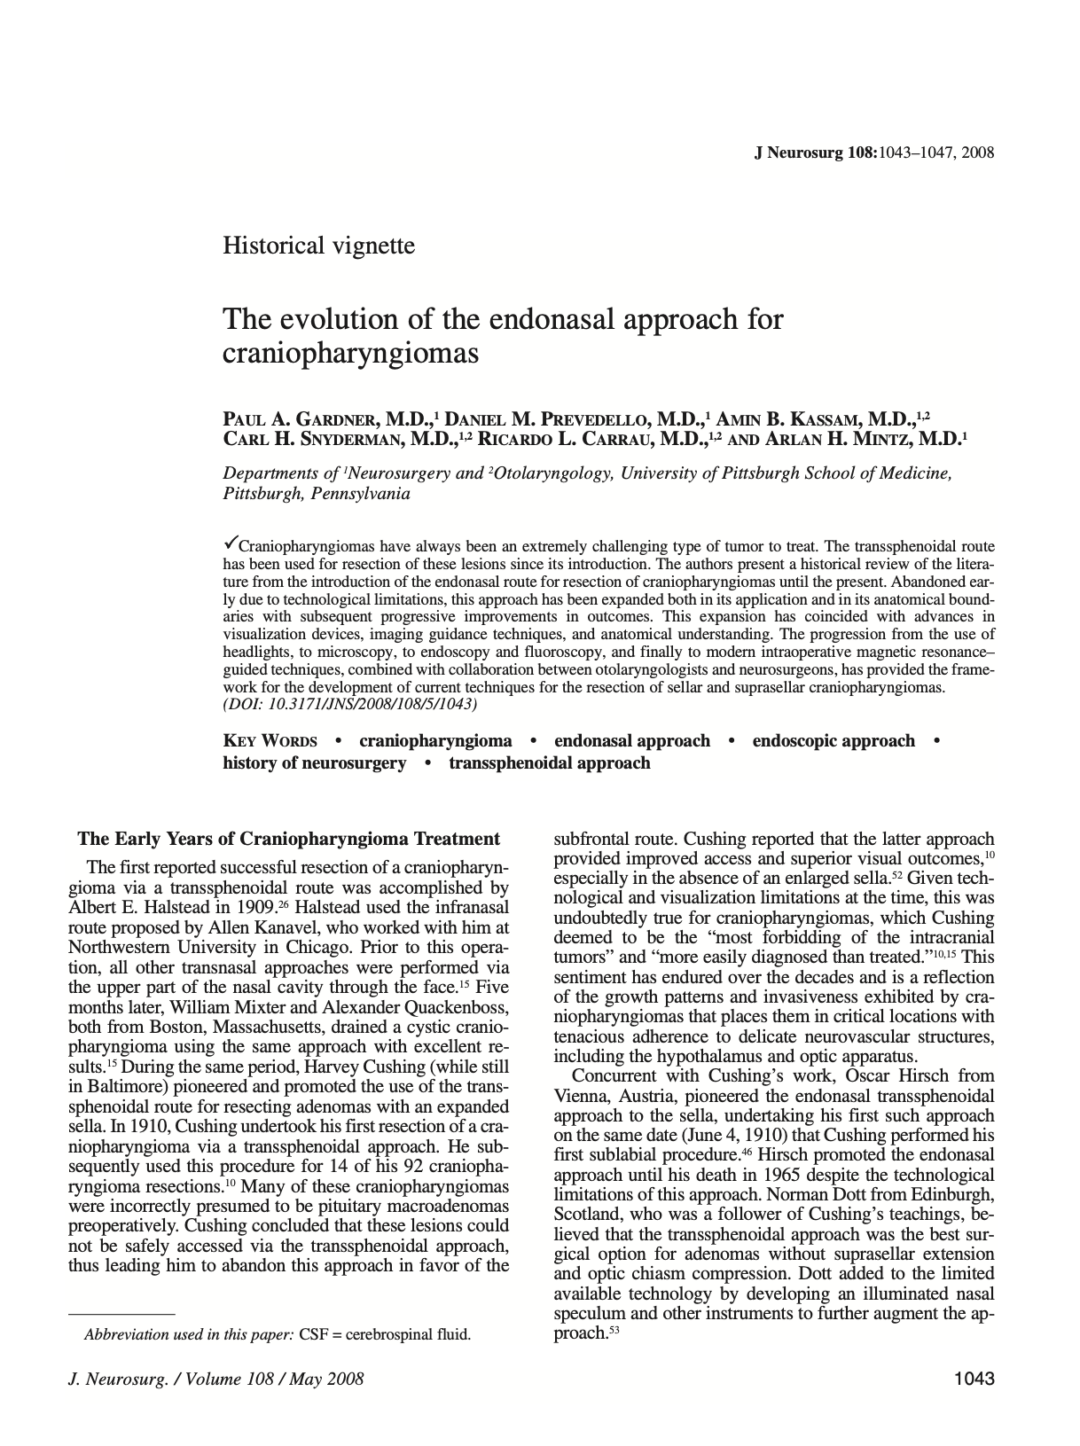 The evolution of the endonasal approach for craniopharyngiomas